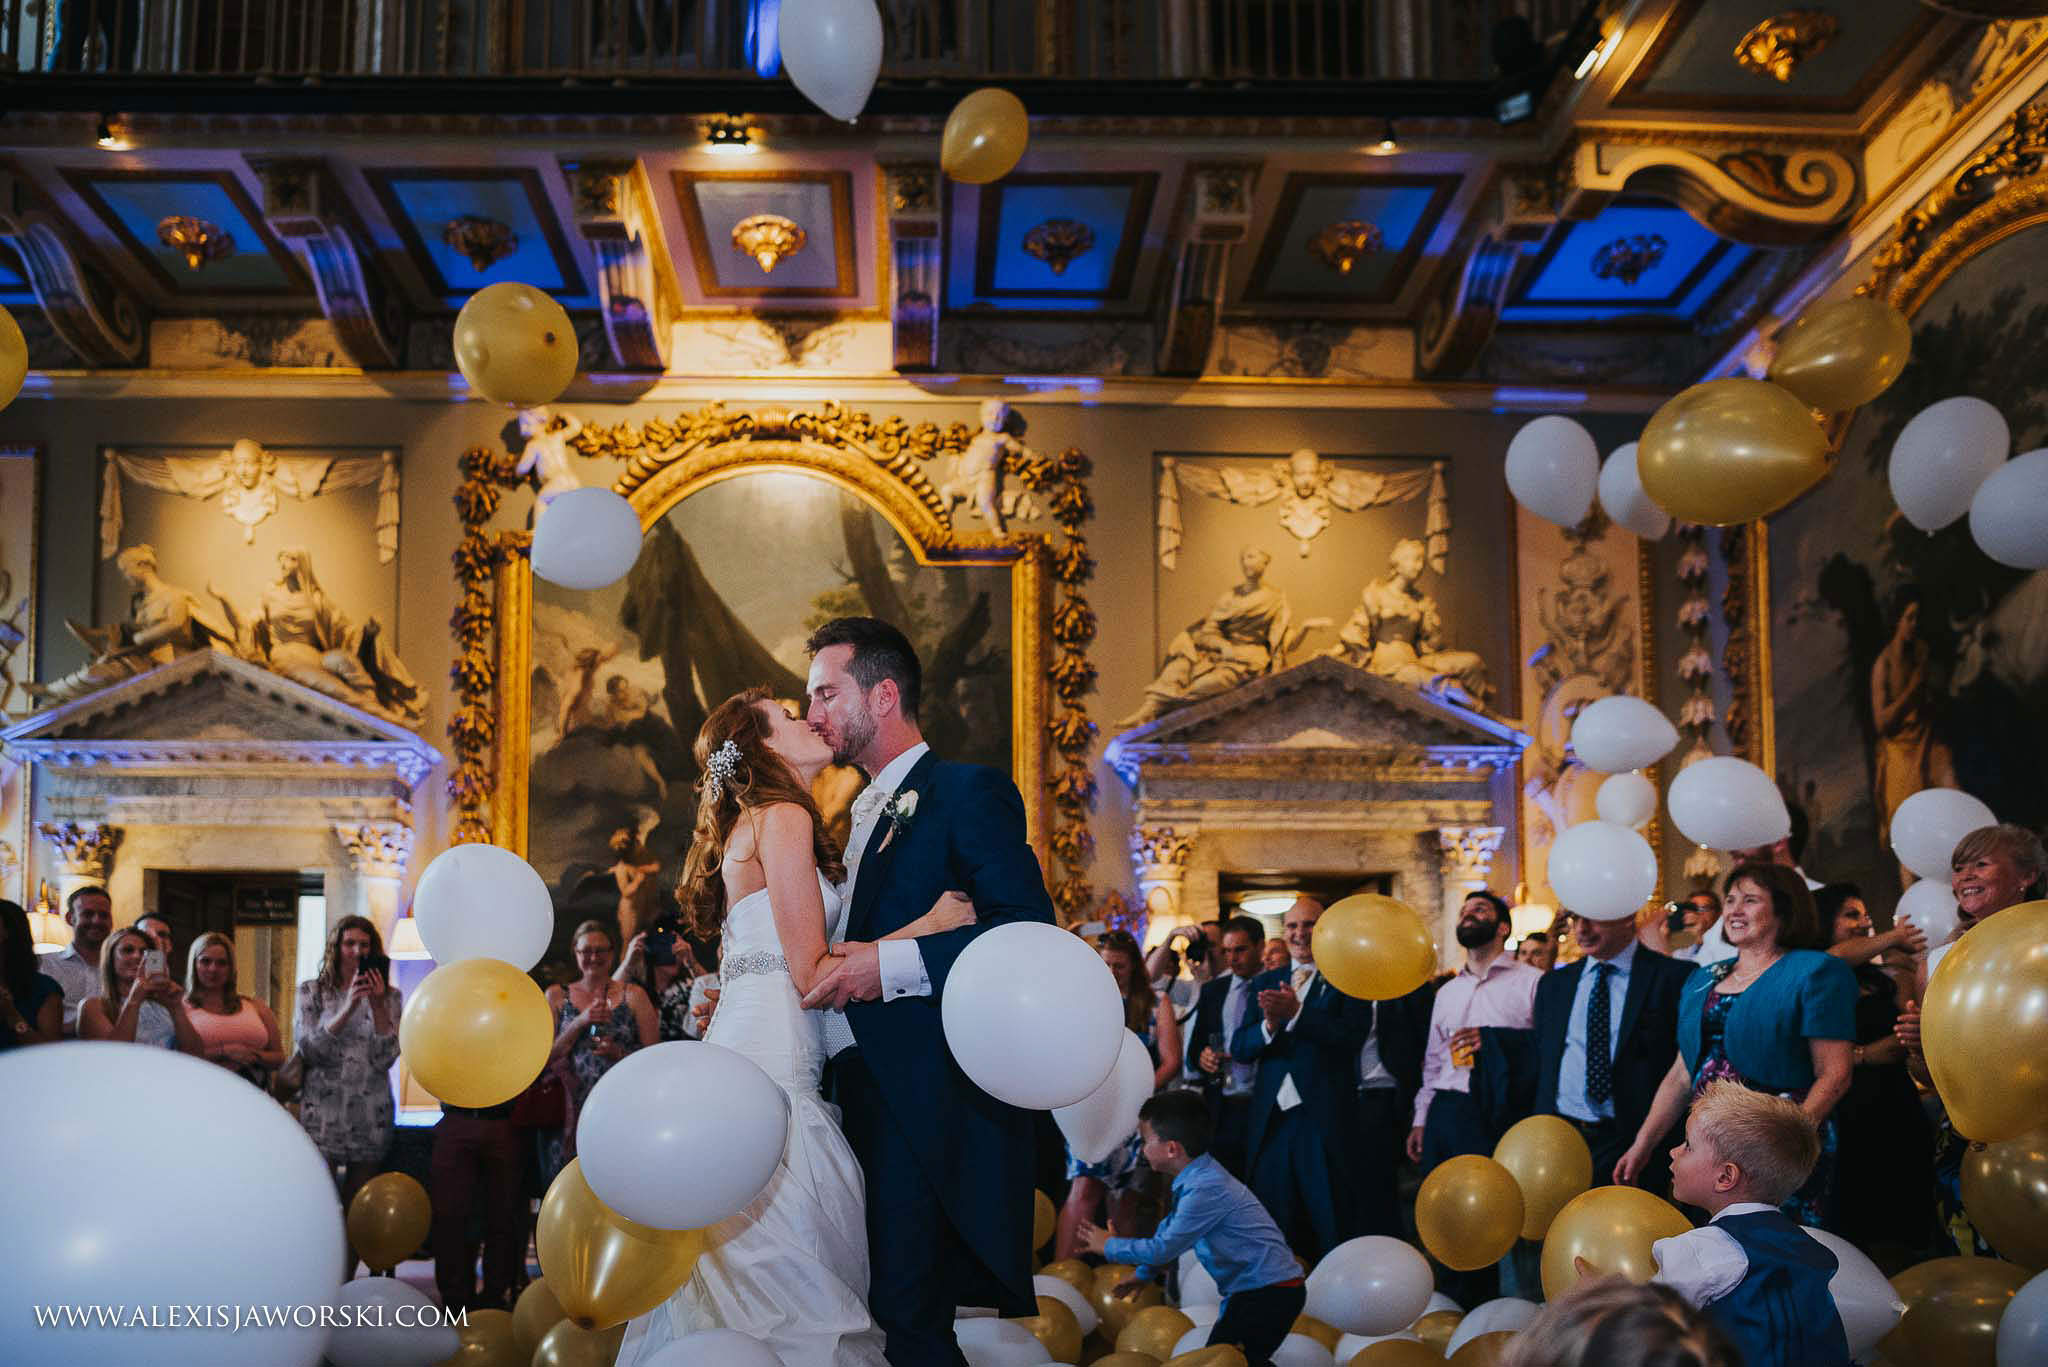 Balloons released during first dance